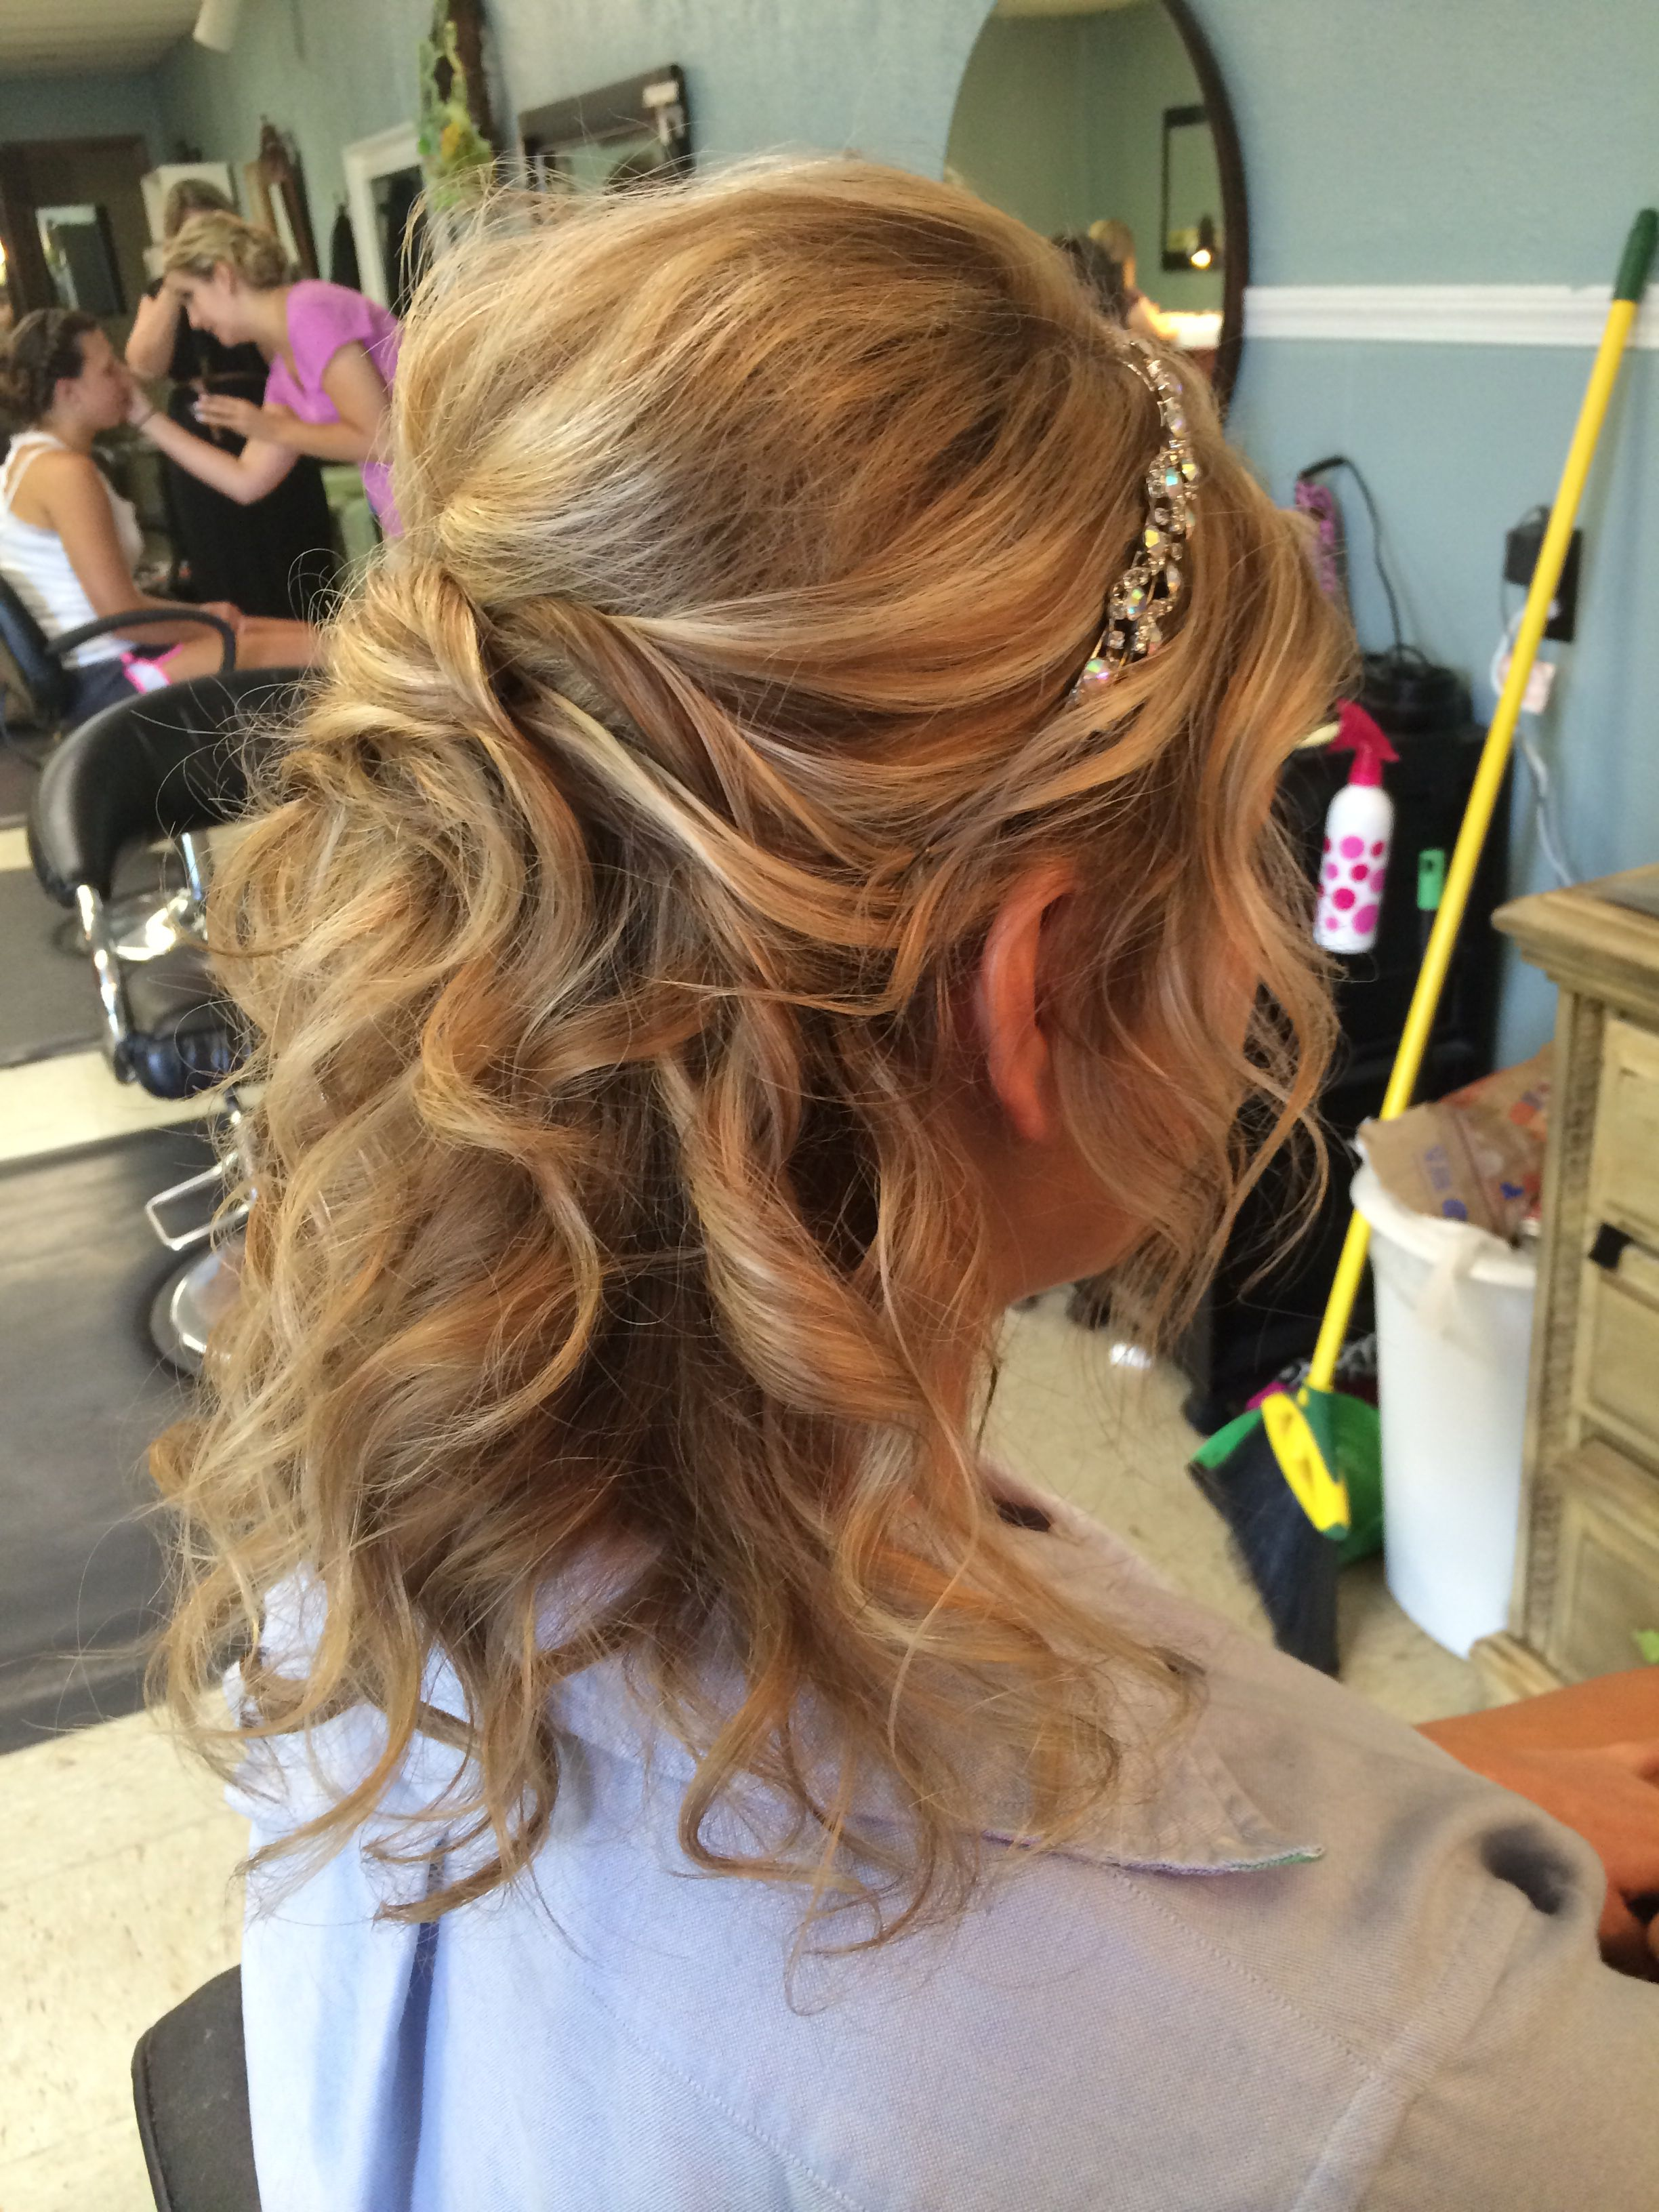 This is a gorgeous half up formal hair style done on medium length